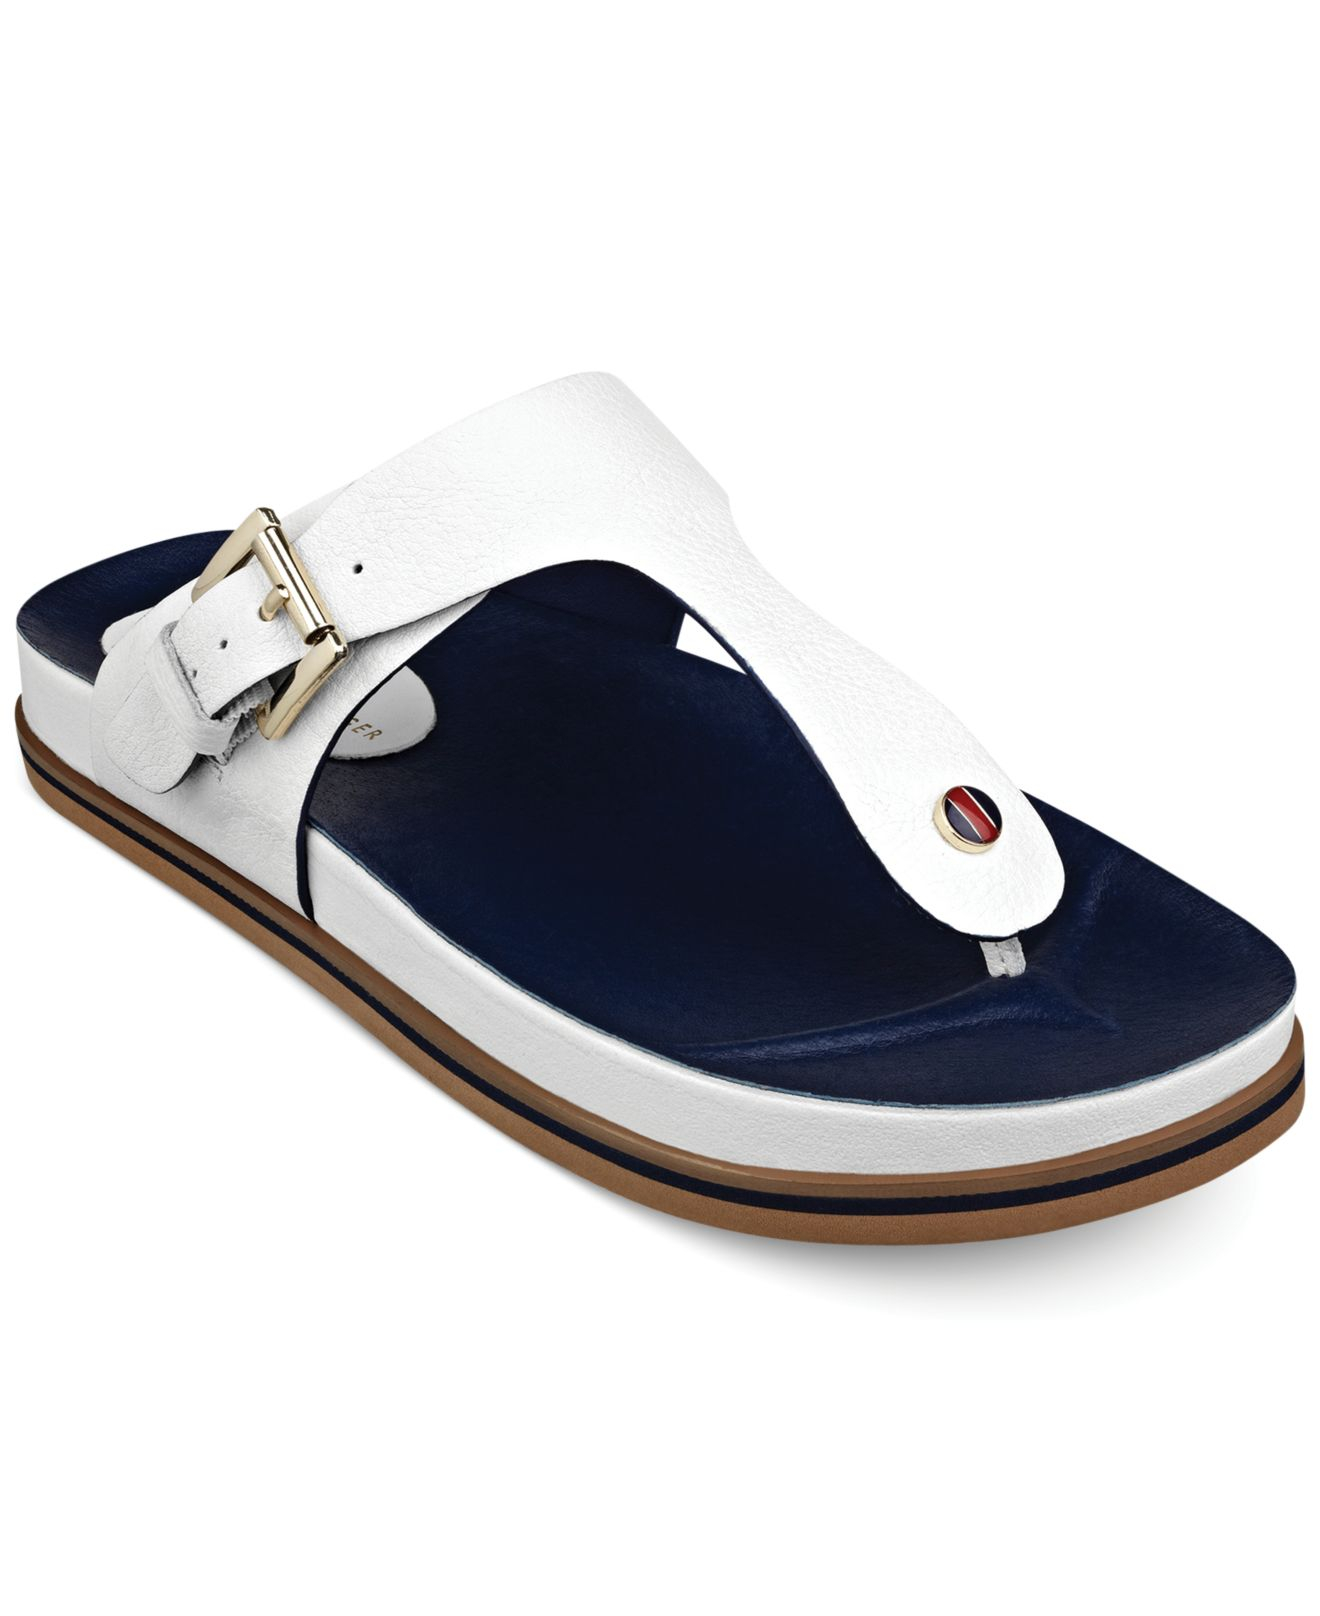 Womens Leather Footbed Beach Sandal Flip Flops Tommy Hilfiger Clearance Official Outlet Brand New Unisex Looking For Online Free Shipping Purchase New And Fashion qntl0cv